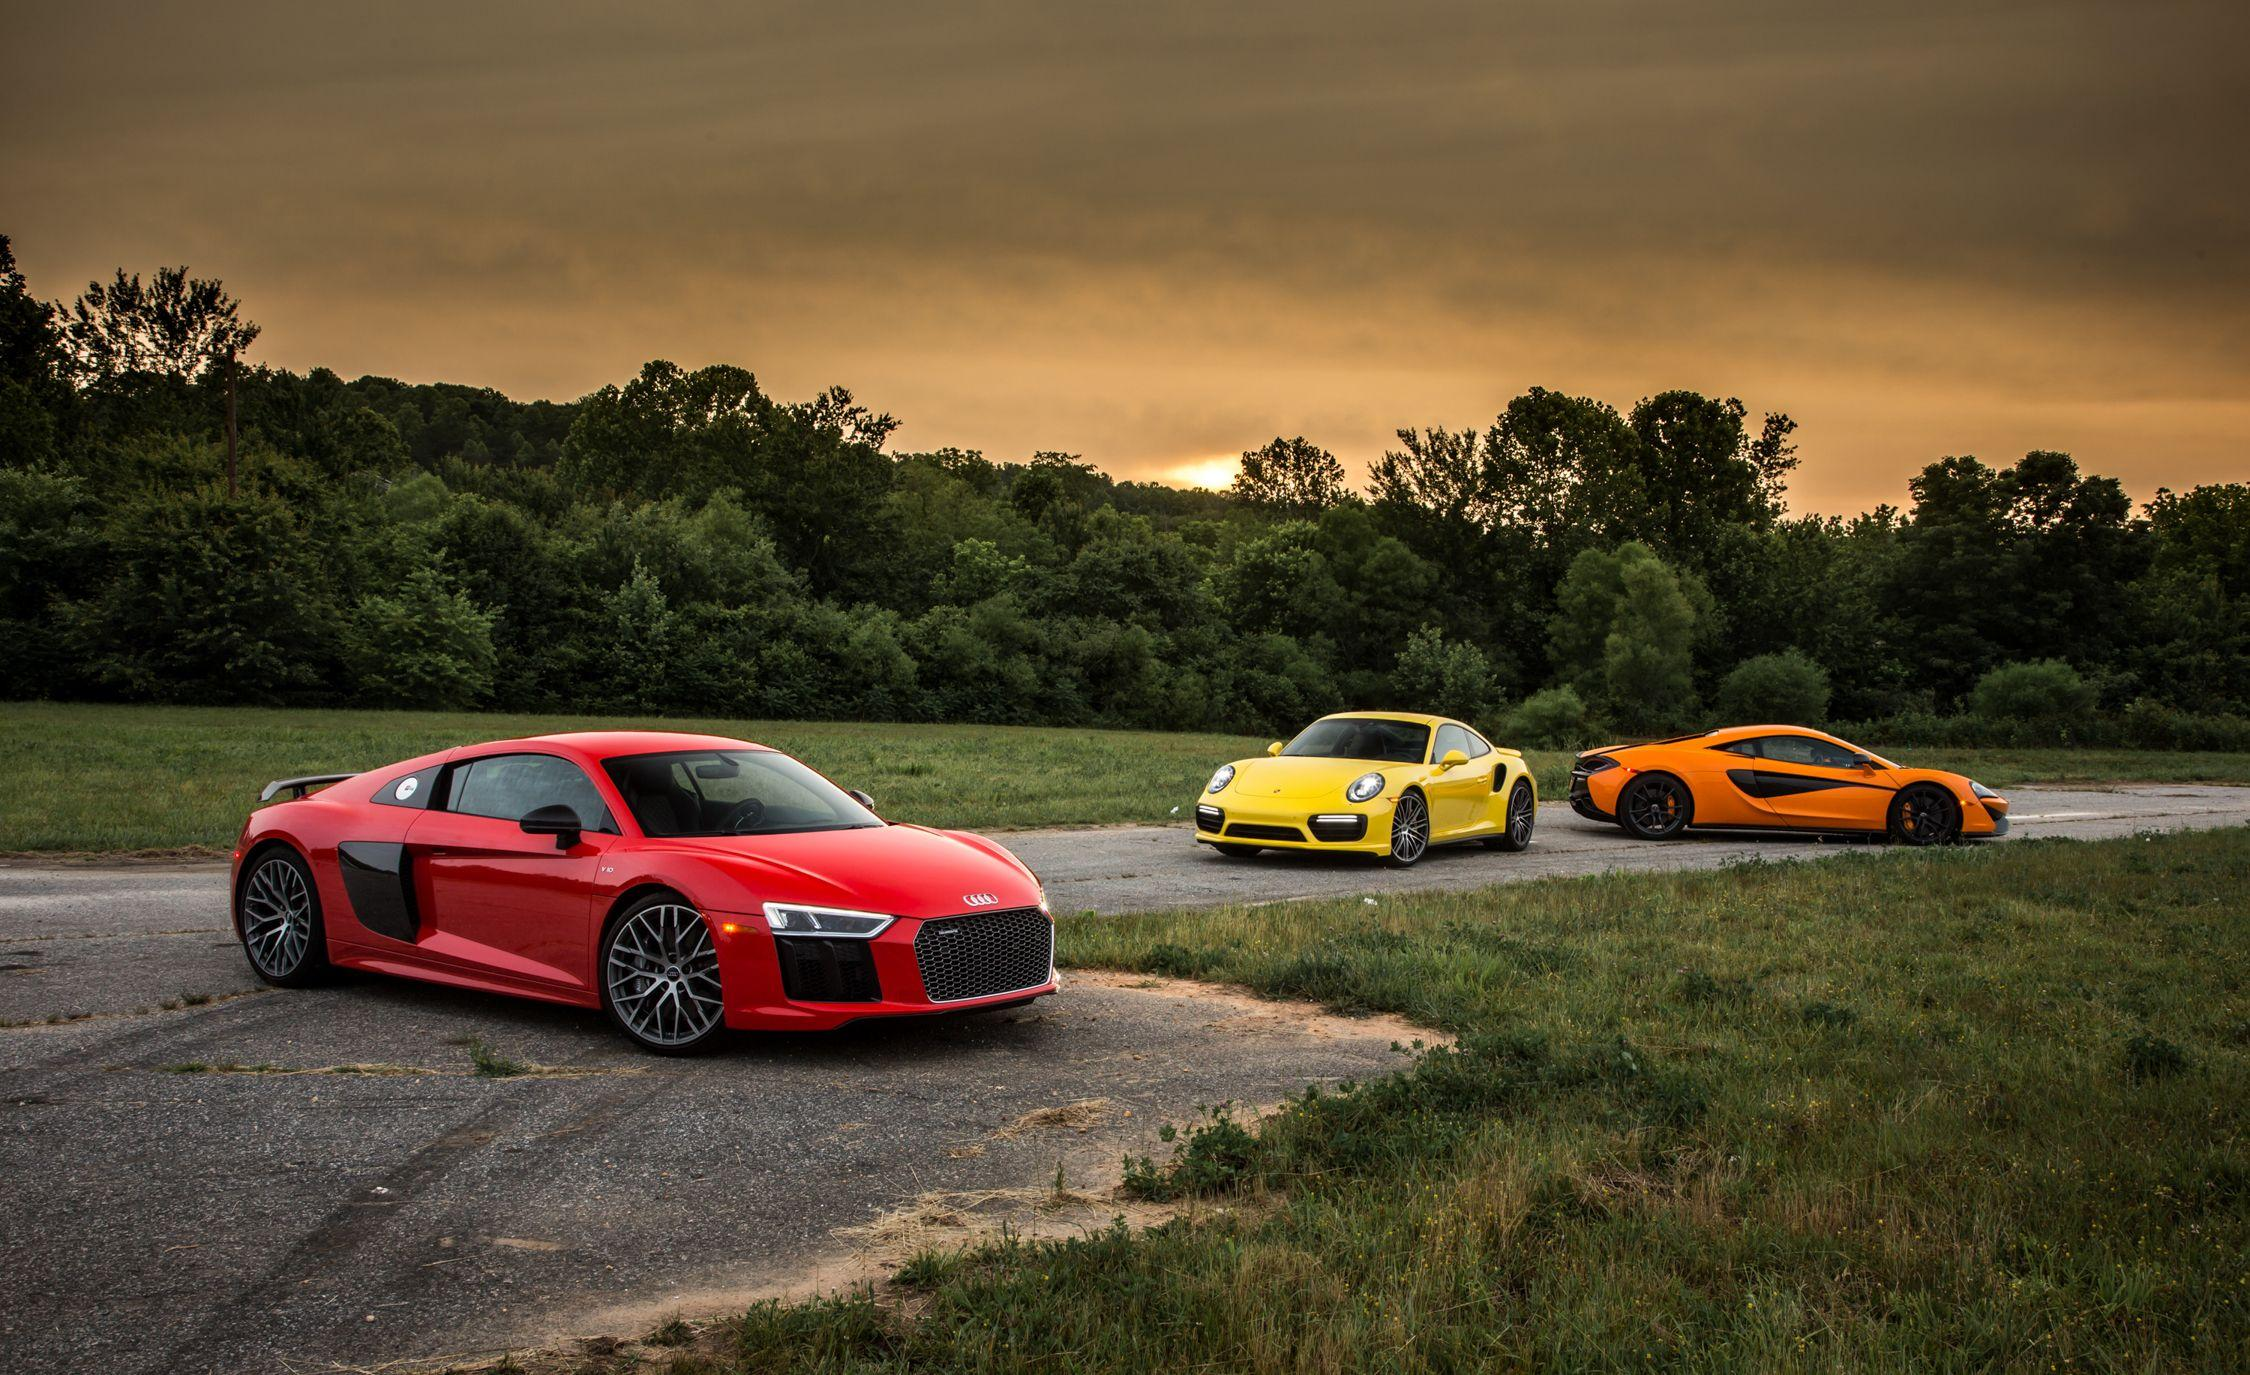 2017 Audi R8 V 10, HD Cars, 4k Wallpapers, Image, Backgrounds